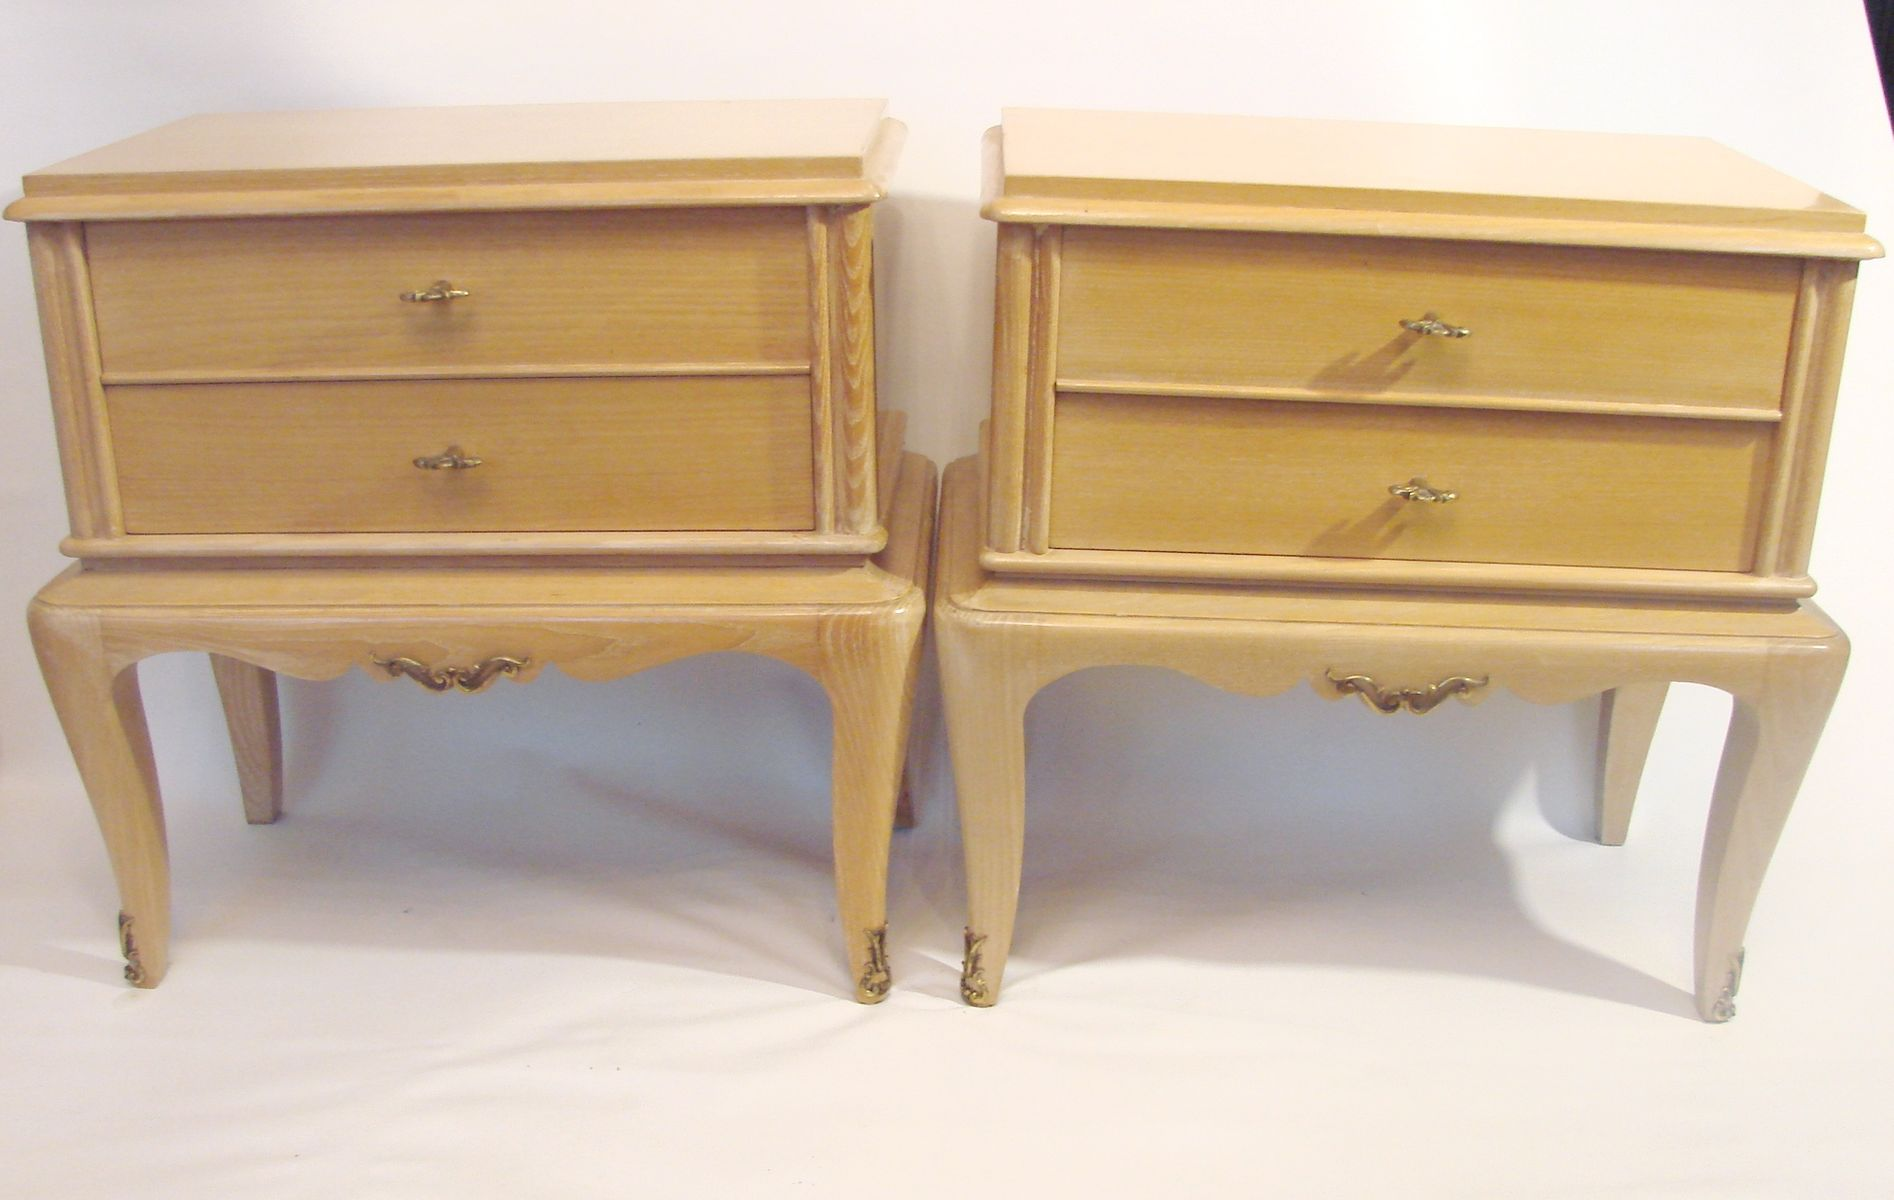 Solid wood bedside cabinets 1960s set of 2 for sale at for Solid wood cabinets